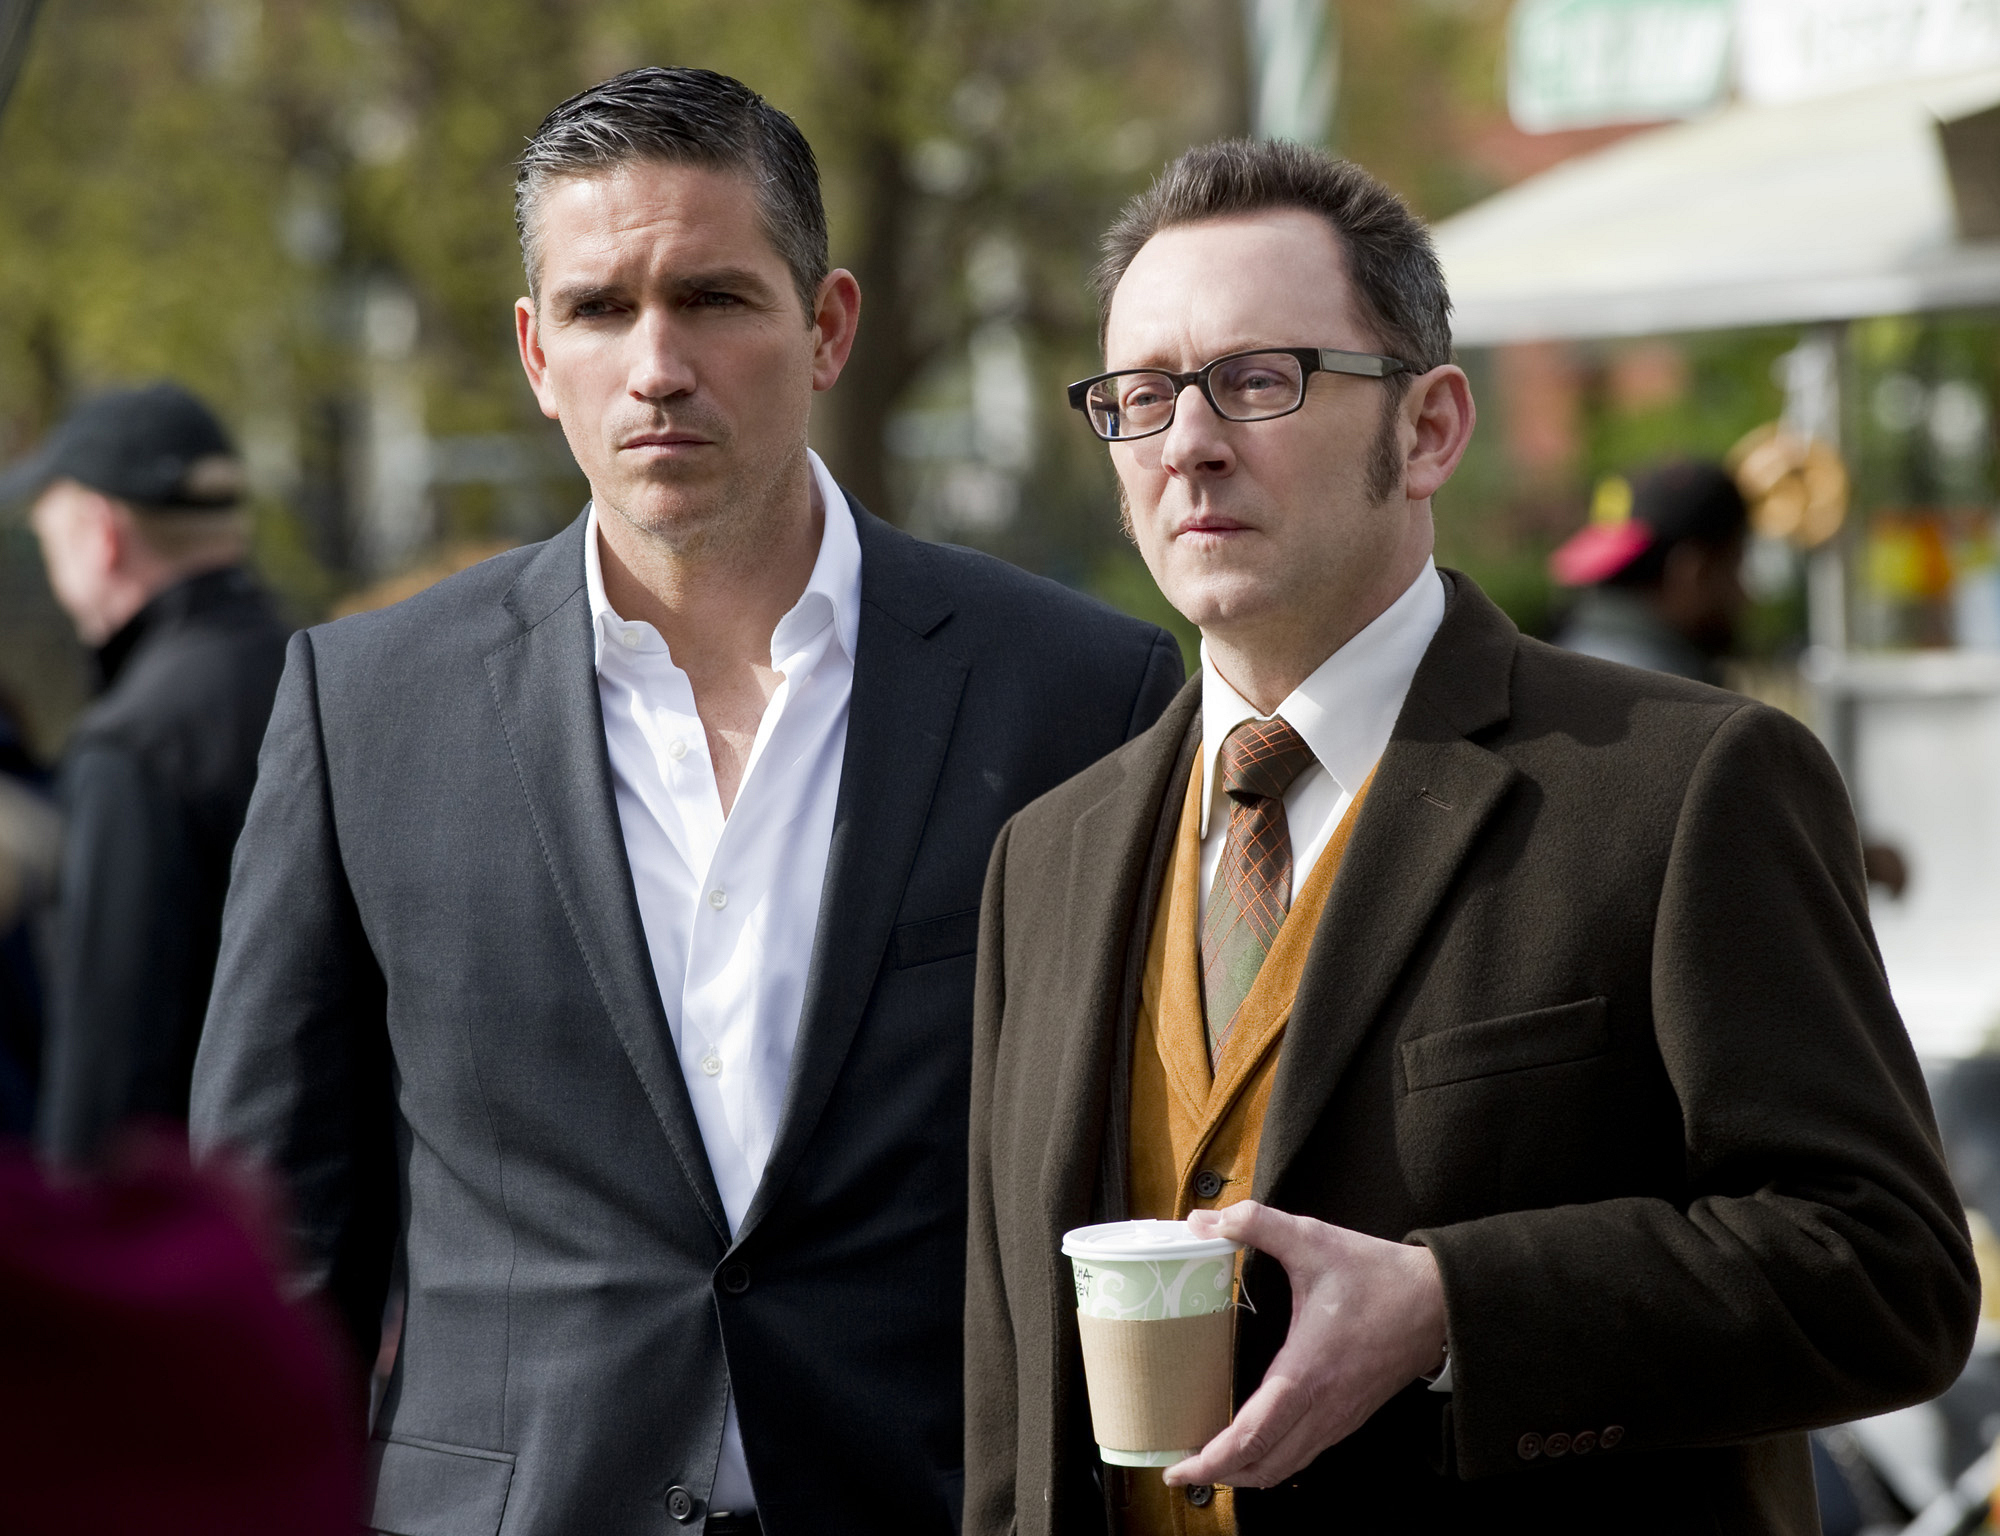 Reese and Finch